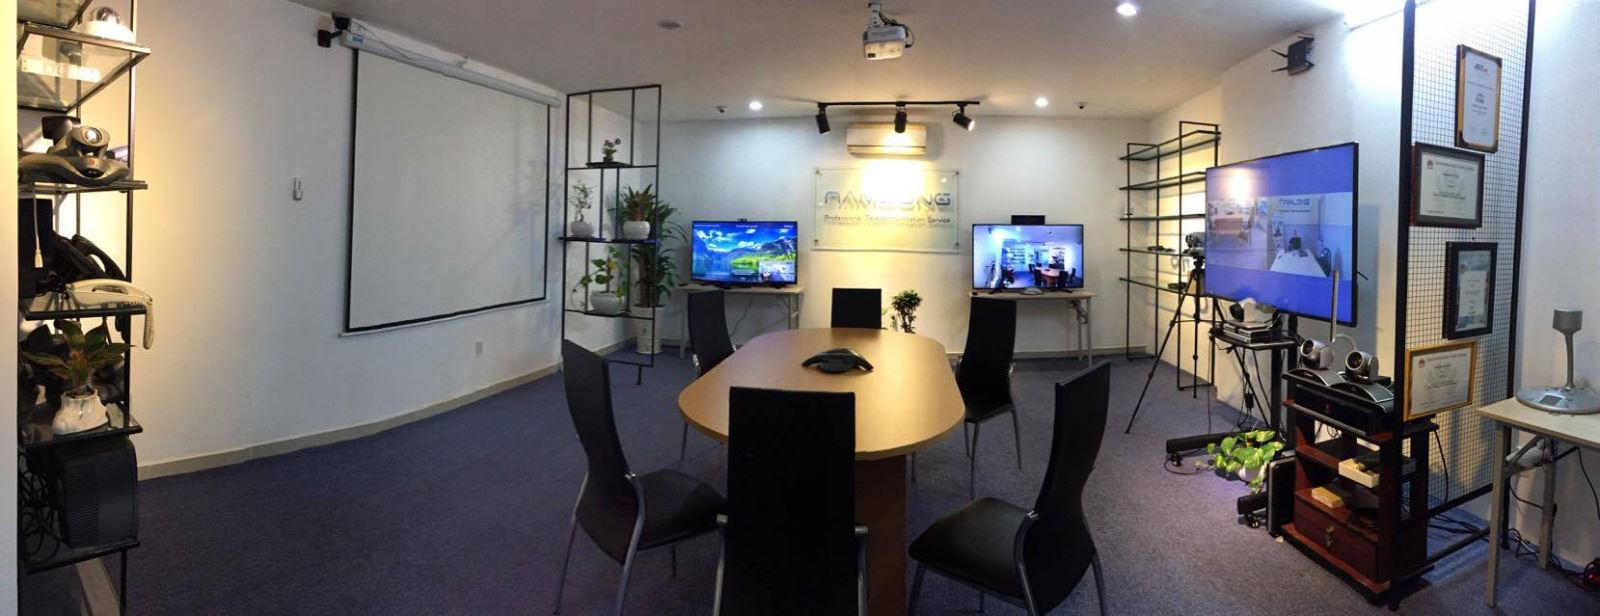 showroom polycom Việt Nam